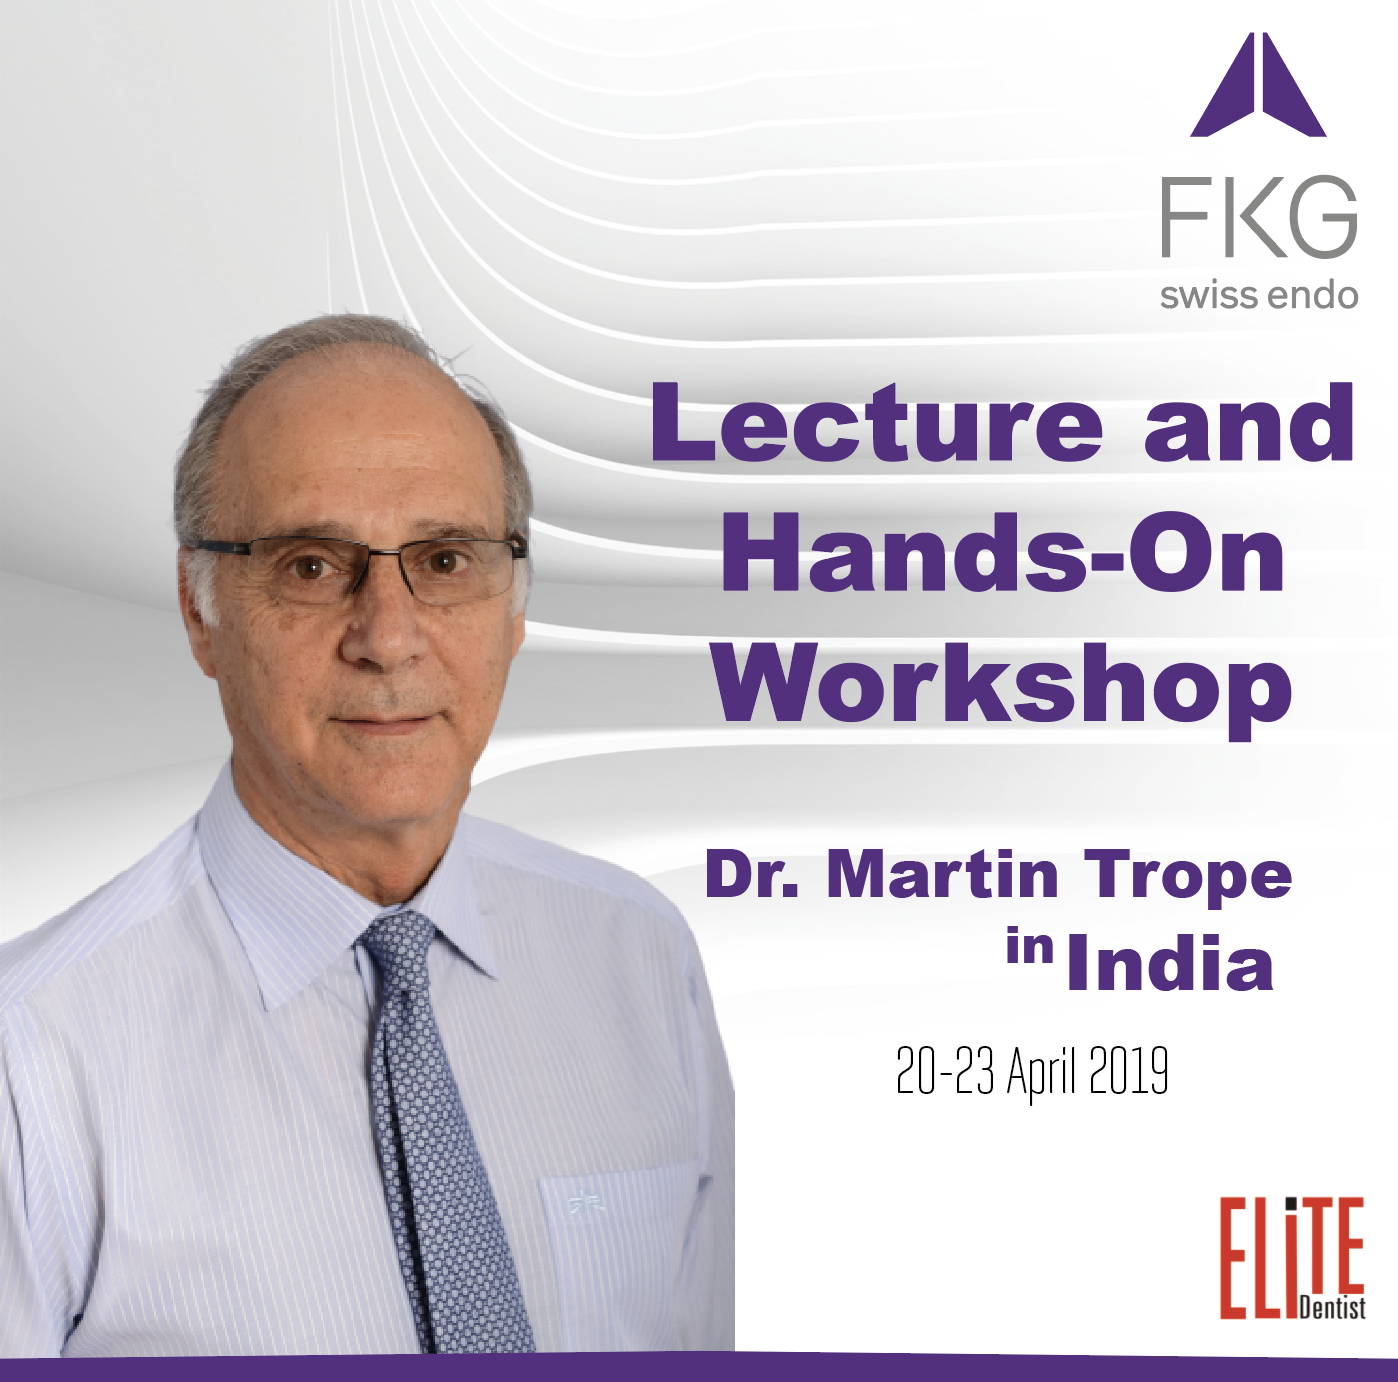 Dr. Martin Trope Lecture and Hands-On Program